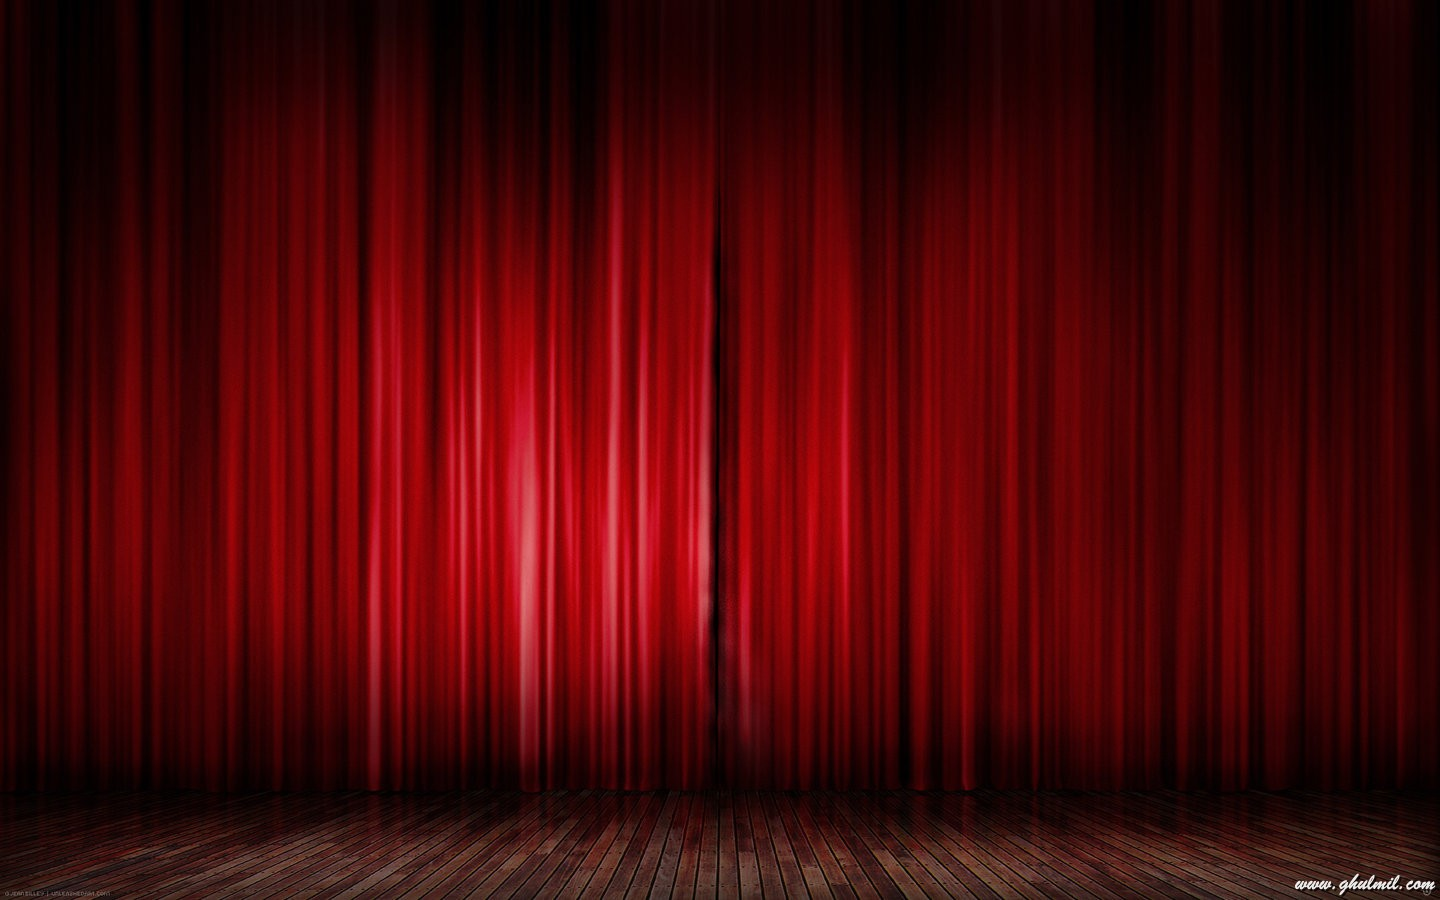 Free Download Red Curtain Desktop Wallpaper Black Background And Some Ppt Template 1440x900 For Your Desktop Mobile Tablet Explore 43 Black Curtain Wallpaper Kitchen Wallpaper Borders And Curtains Coordinating